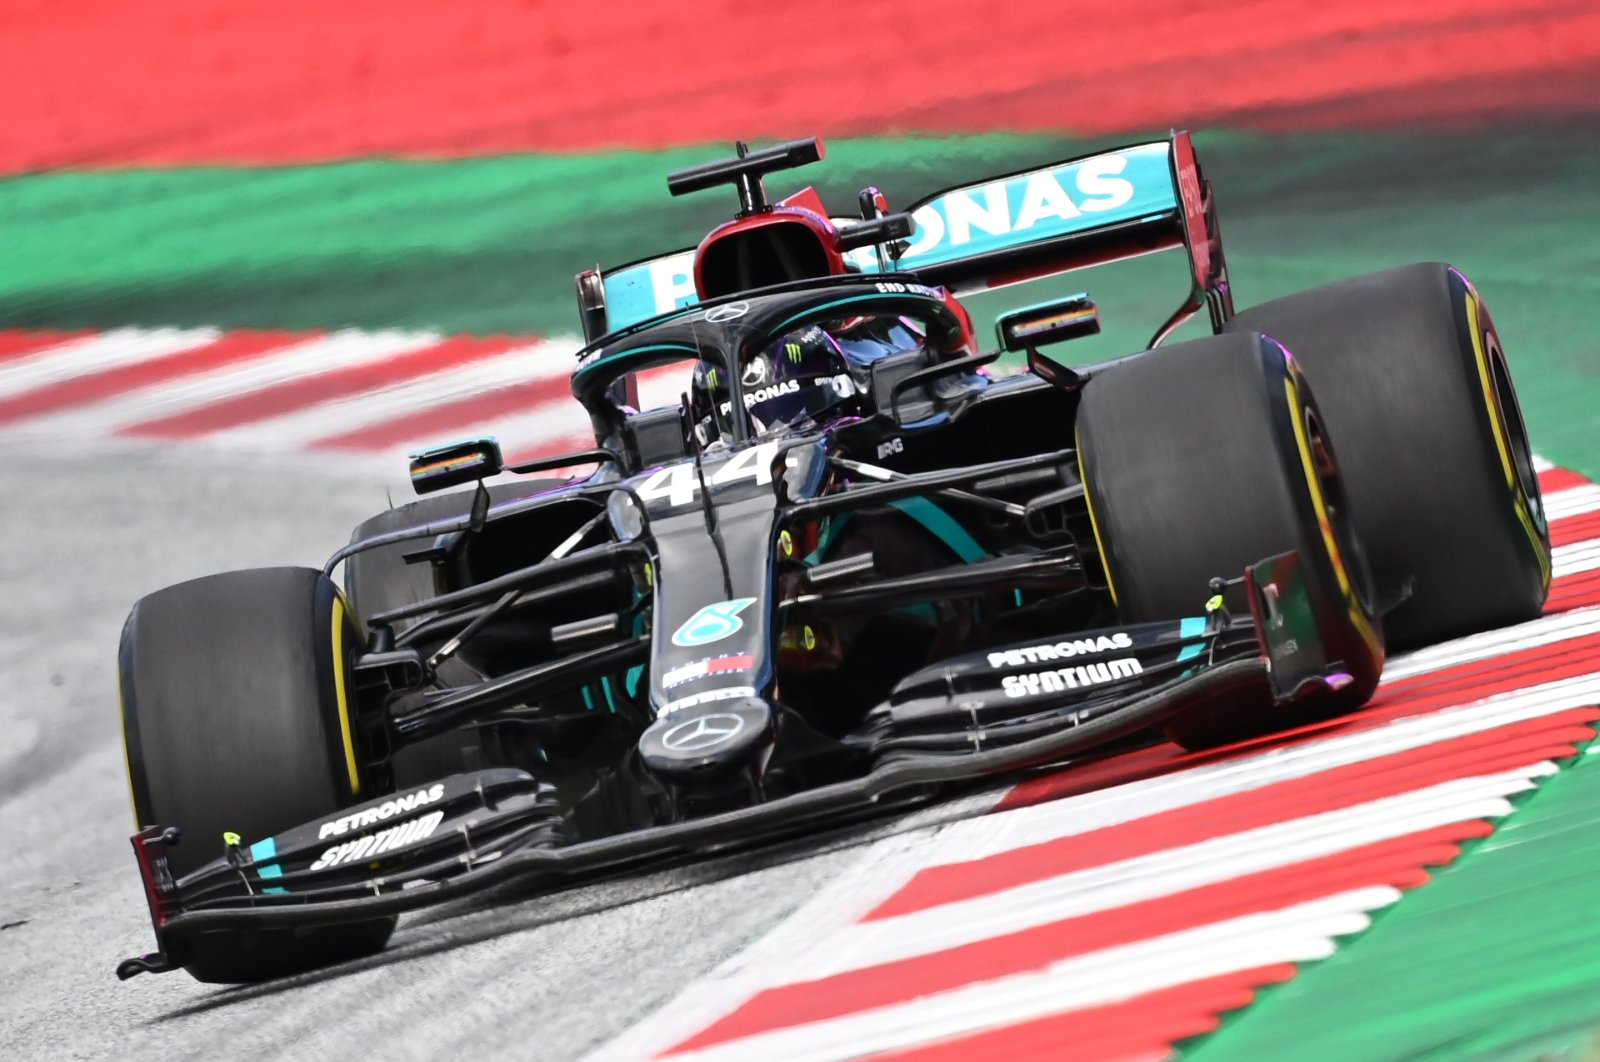 Mercedes' Lewis Hamilton steers his car during the F1 Styrian Grand Prix race in Spielberg, Austria, July 12, 2020. (AFP Photo)